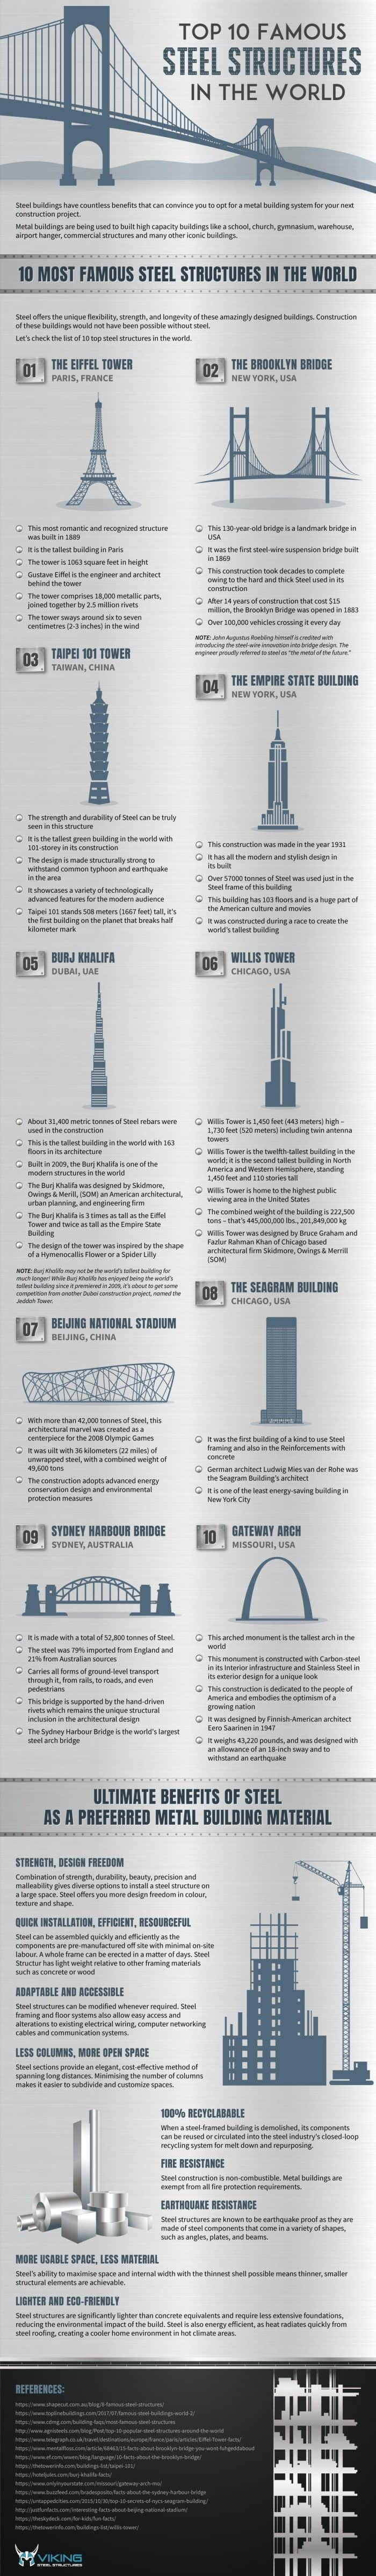 Top 10 Famous Steel Structures